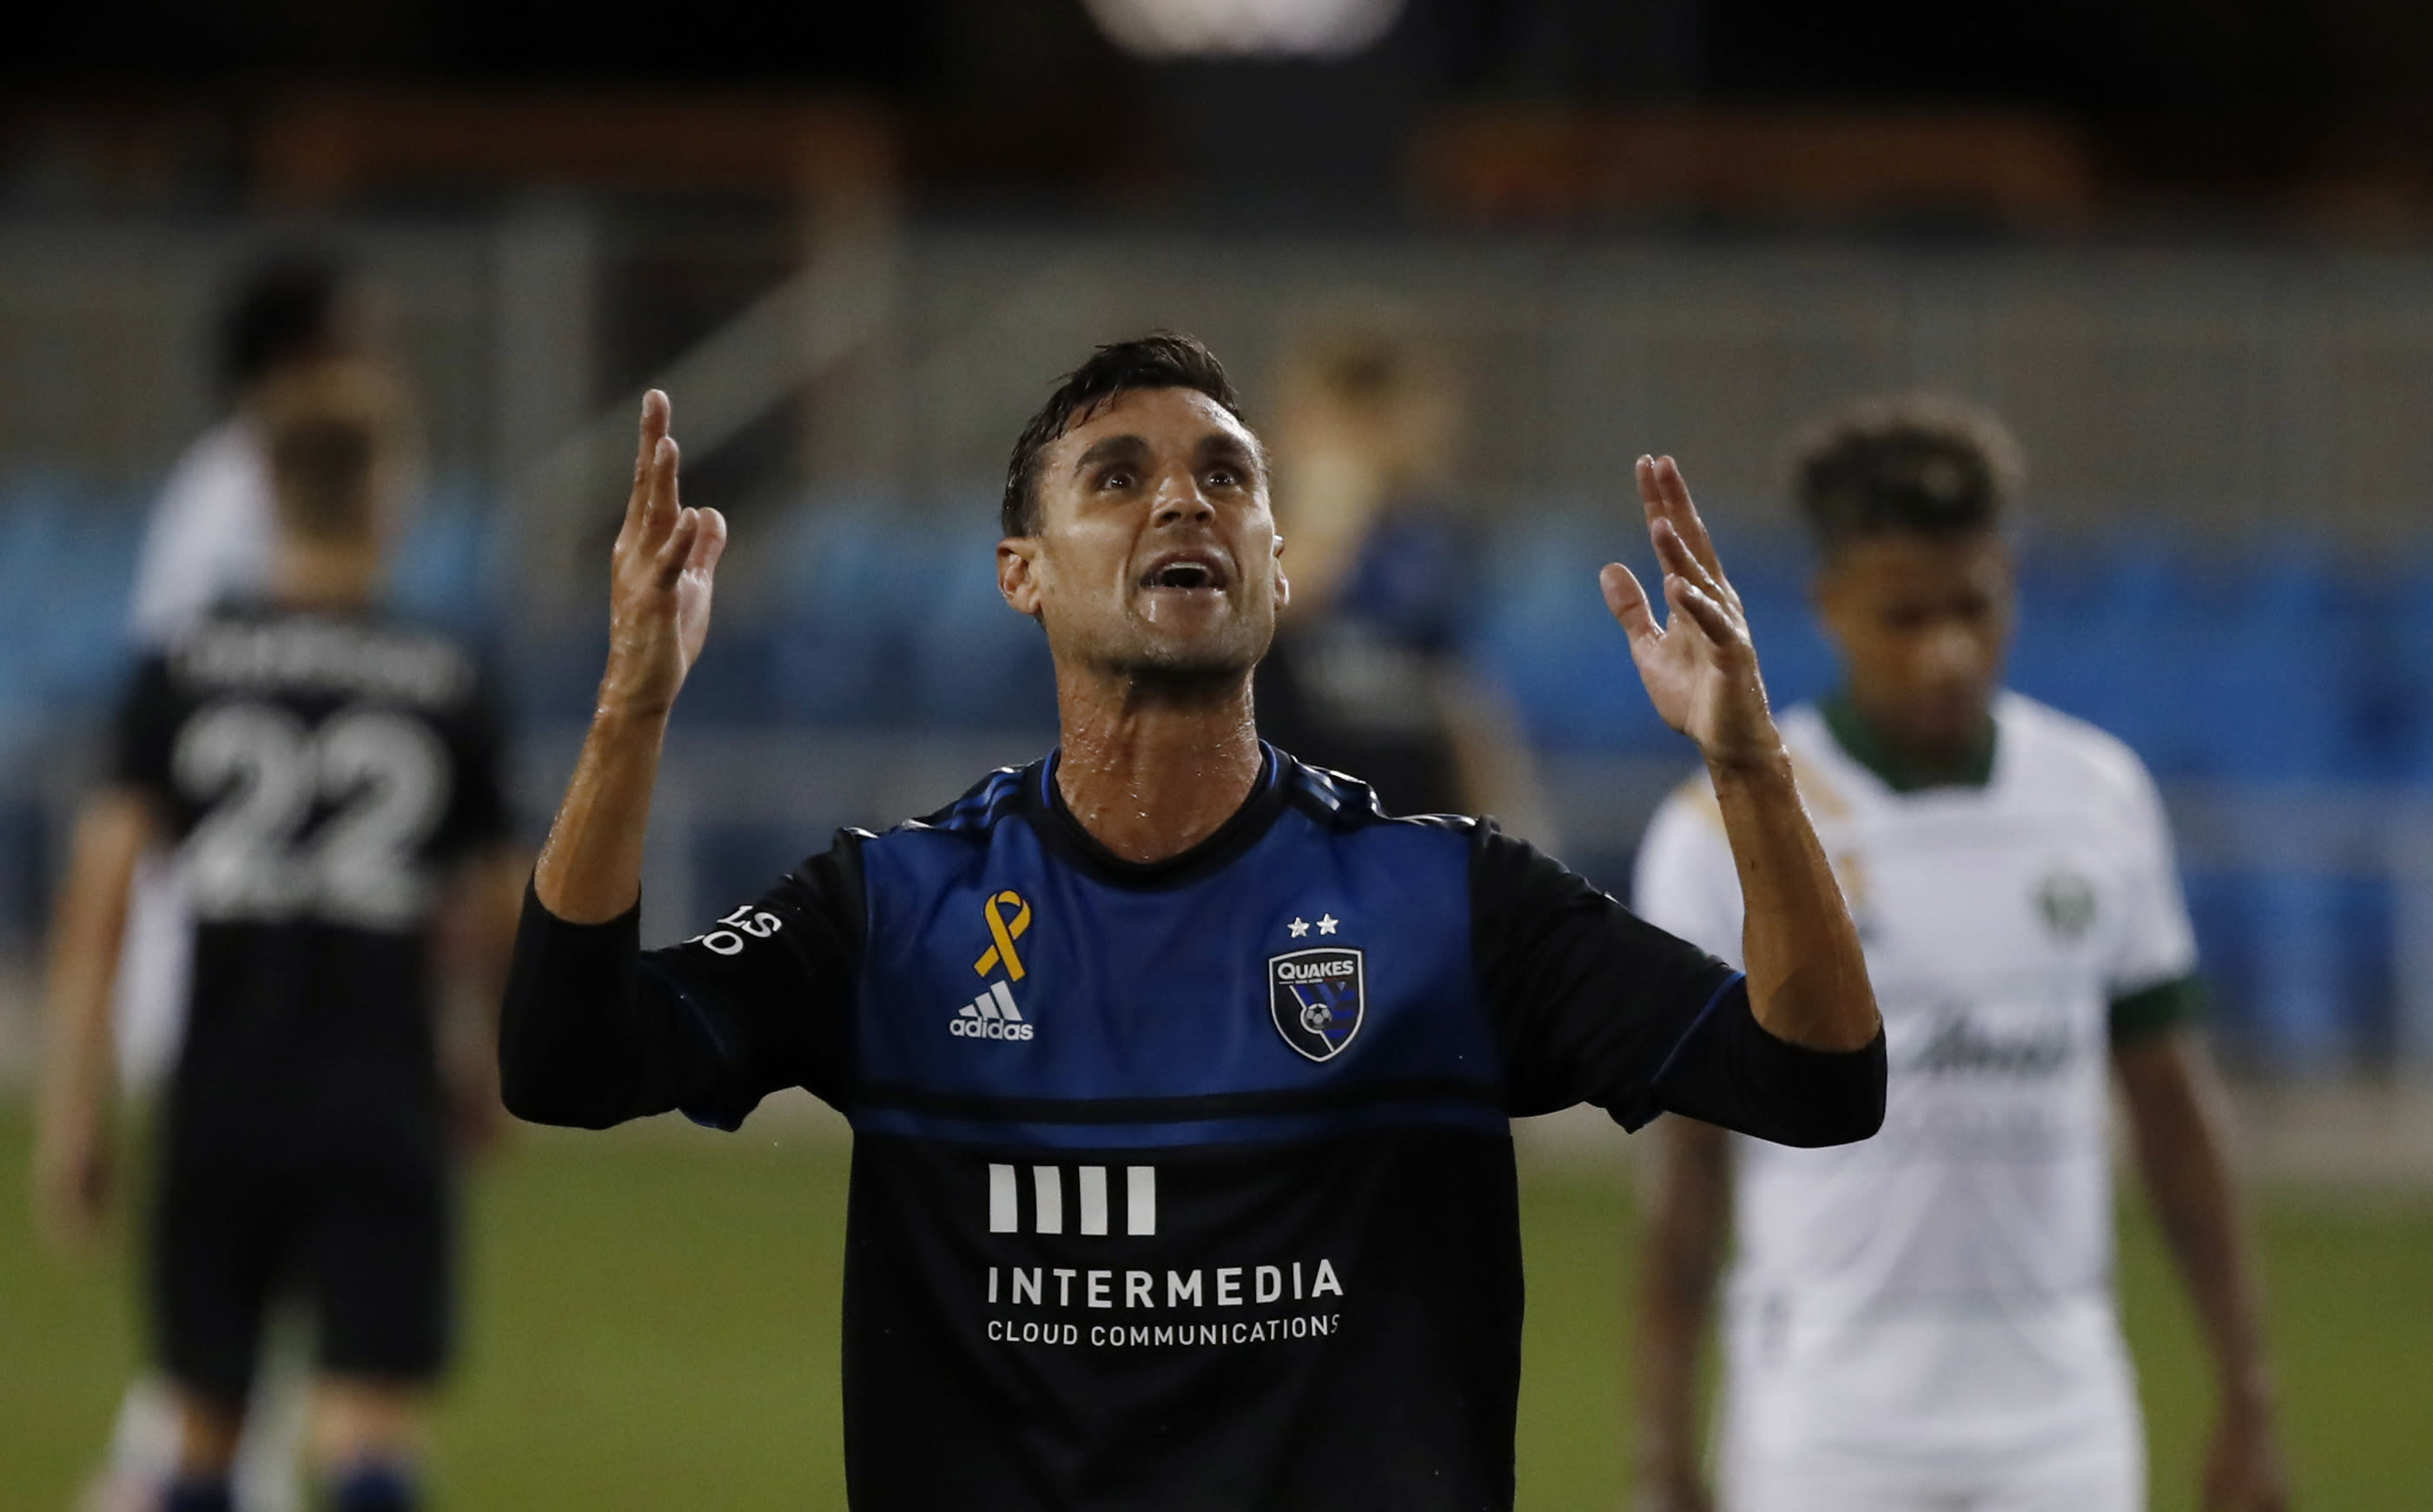 San Jose Earthquakes forward Chris Wondolowski reacts during the second half of the team's MLS soccer match against the Portland Timbers on Wednesday, Sept. 16, 2020, in San Jose, Calif. (AP Photo/Josie Lepe)